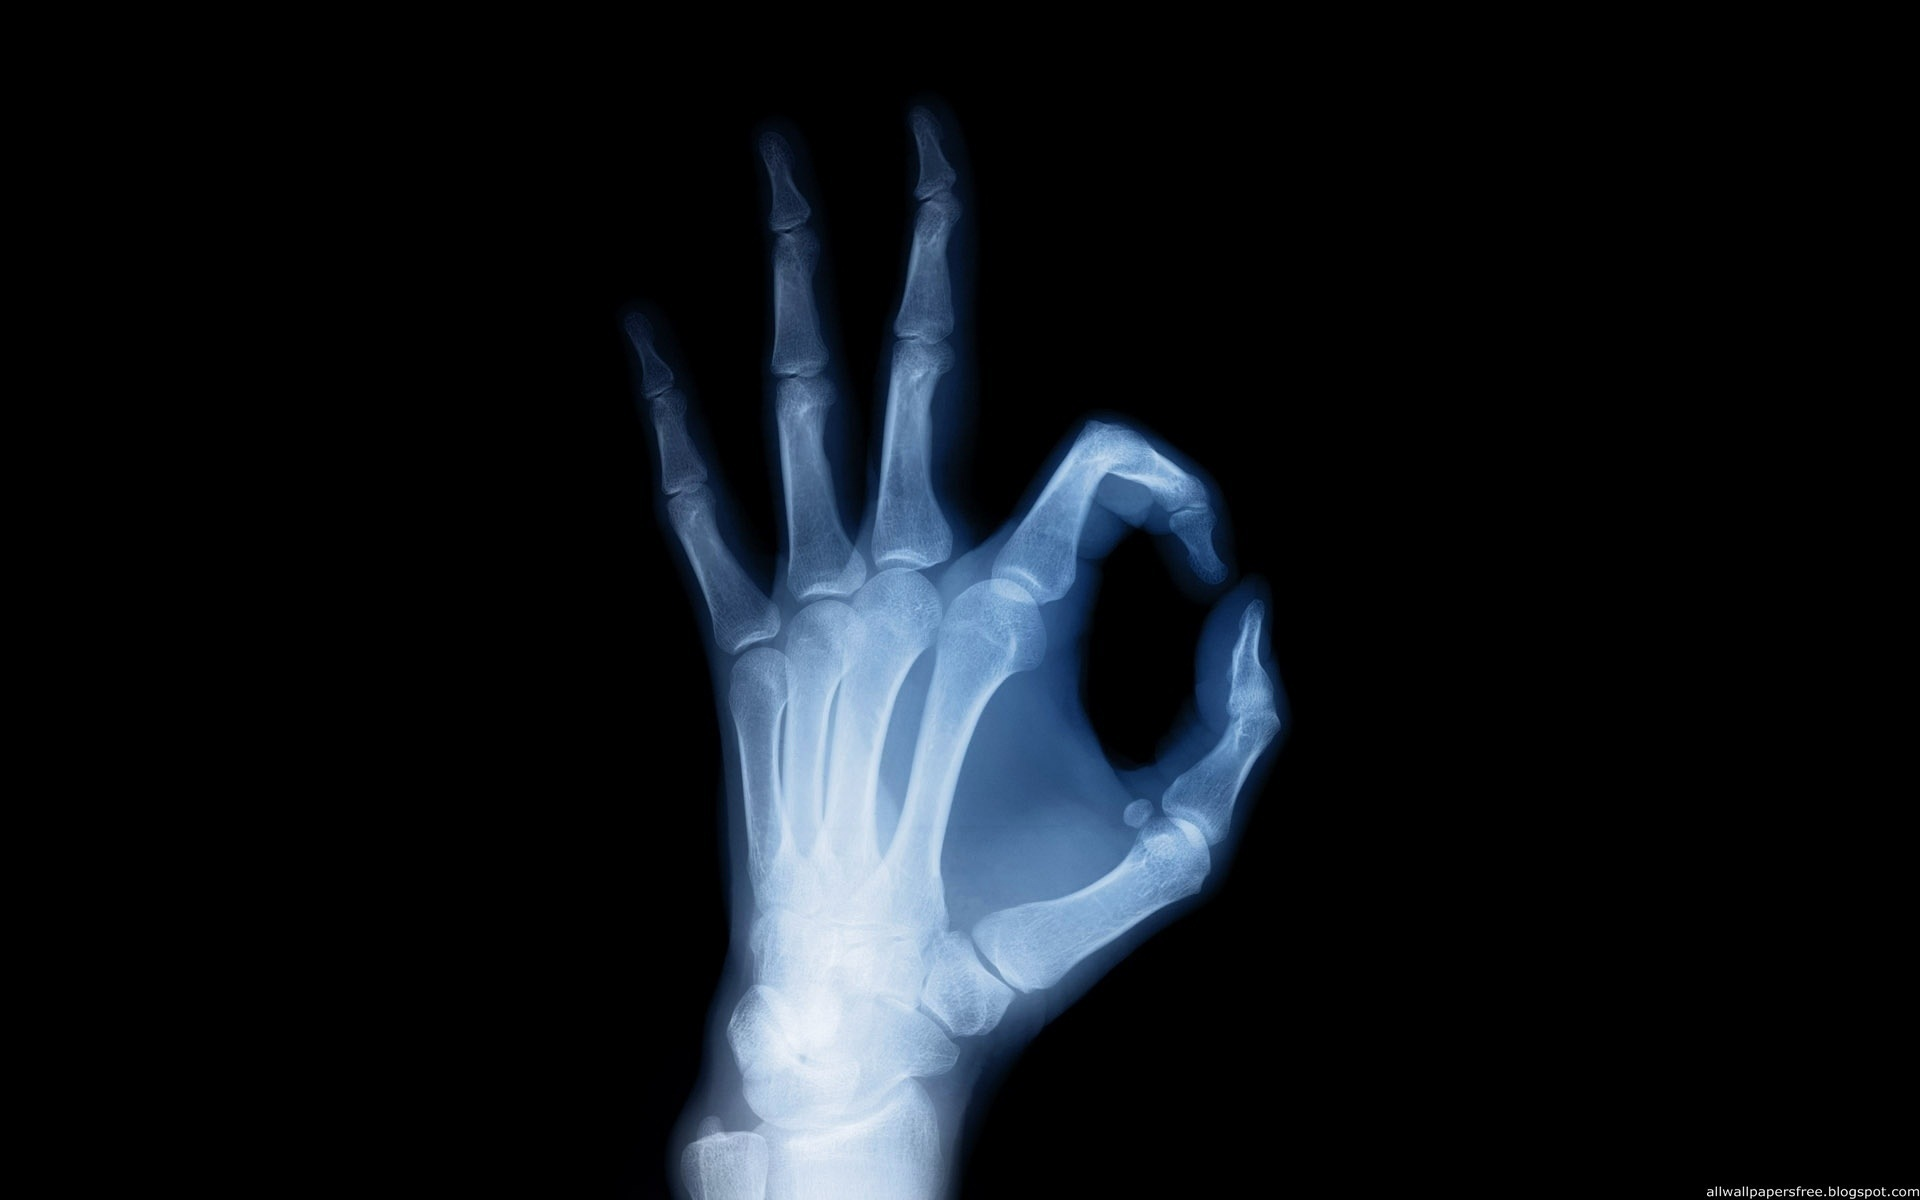 x-rays, texture, background, download photo, arm x-ray texture background